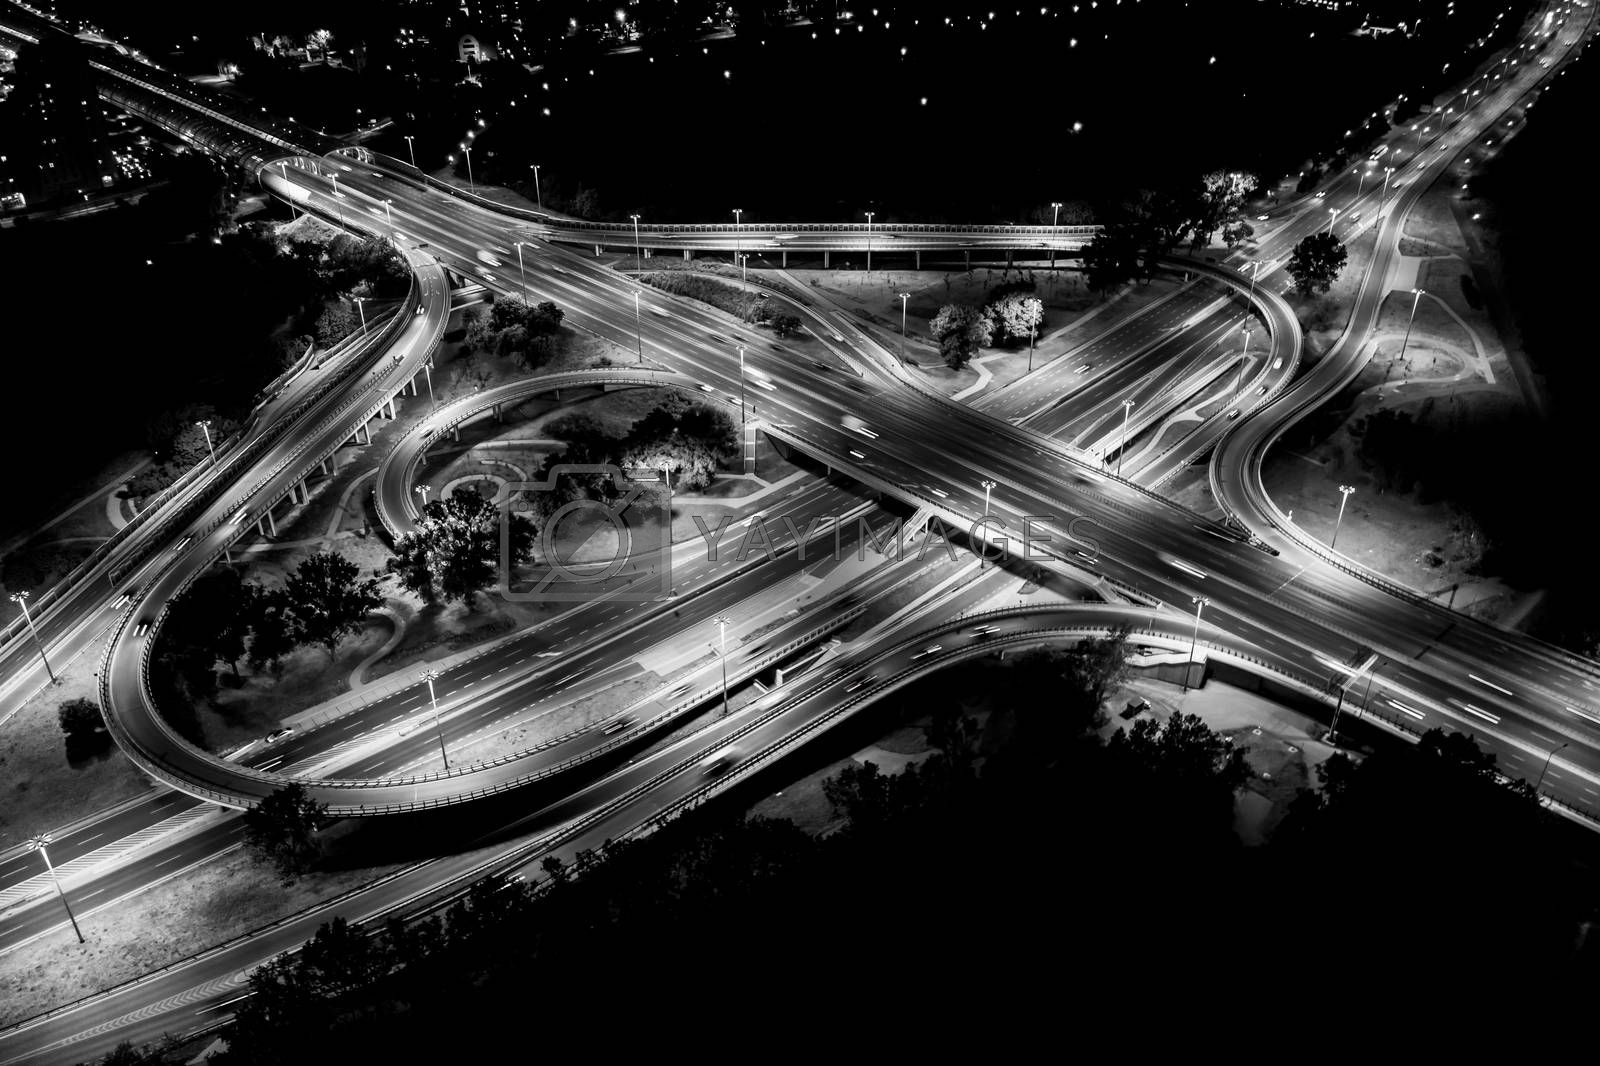 City interchange closeup at night , beautiful transport infrastructure background. Black and White. Aerial view